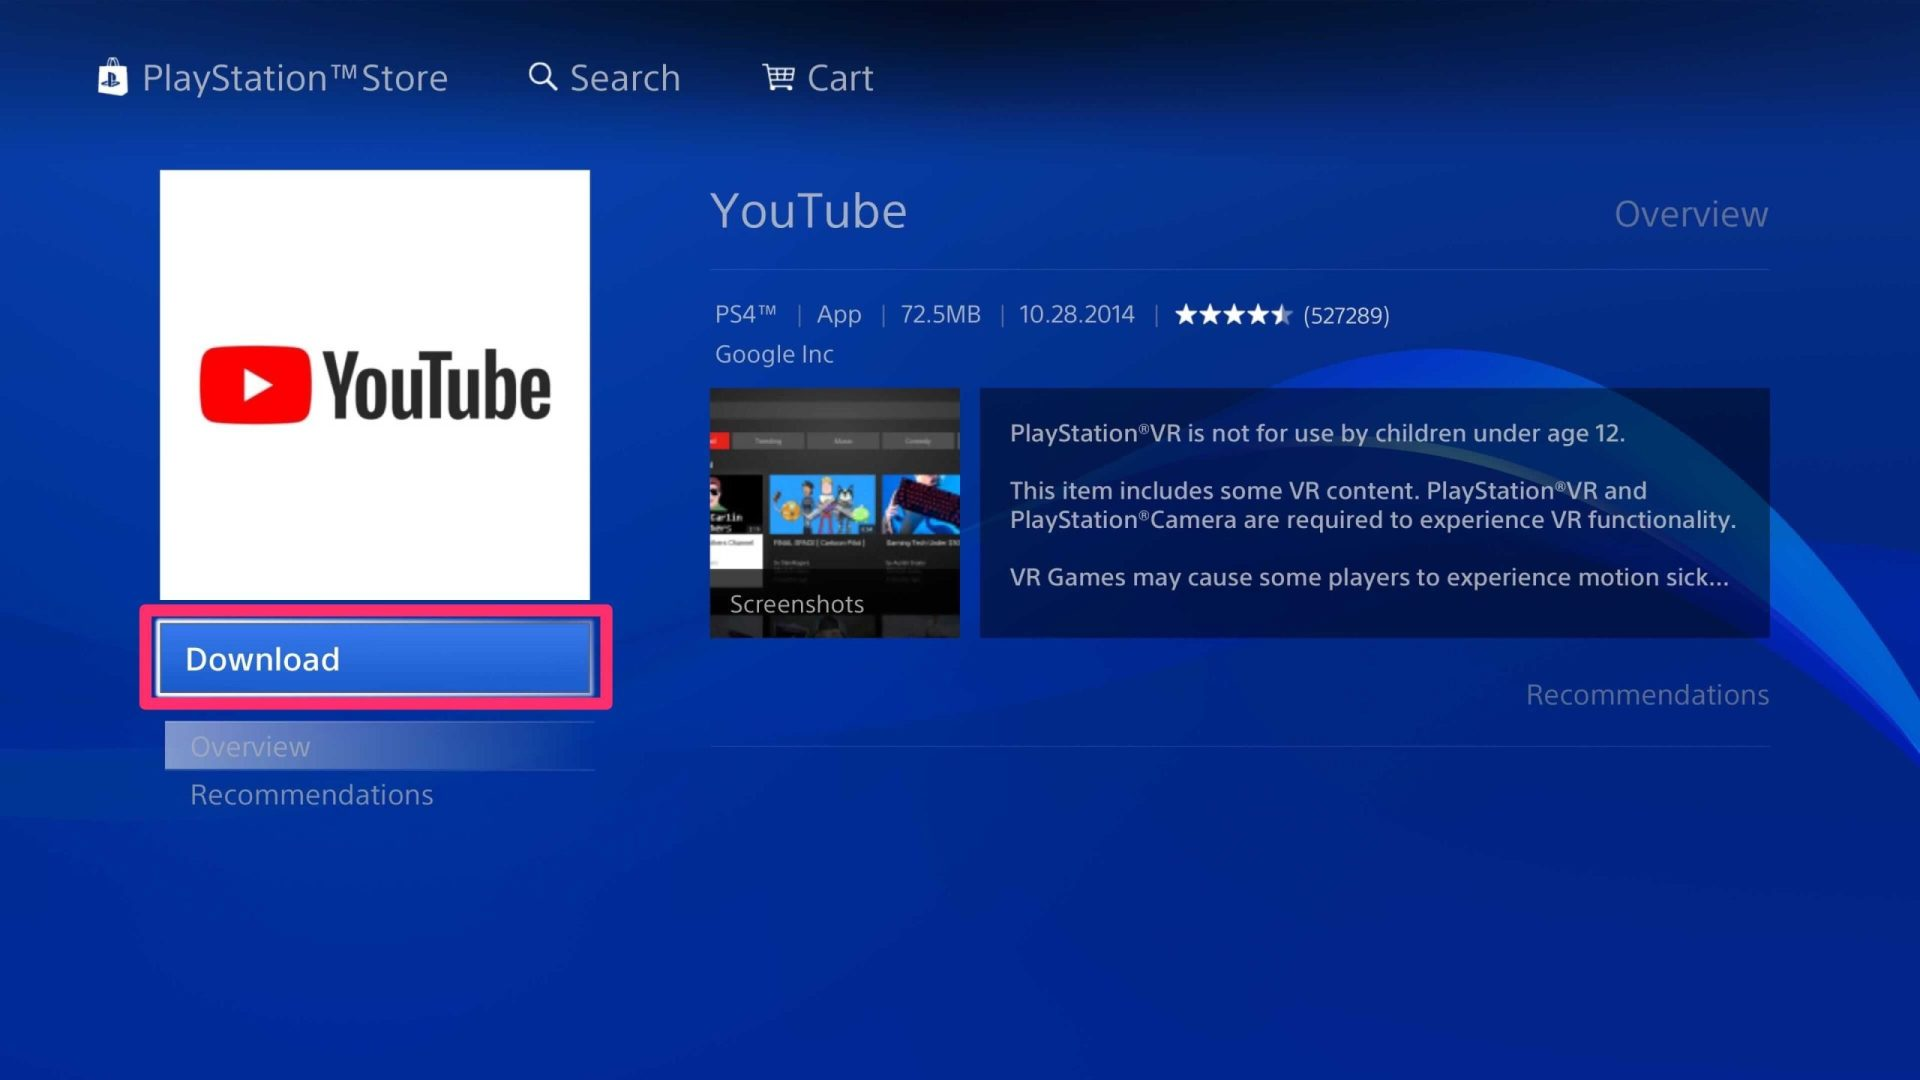 Download YouTube on PS4